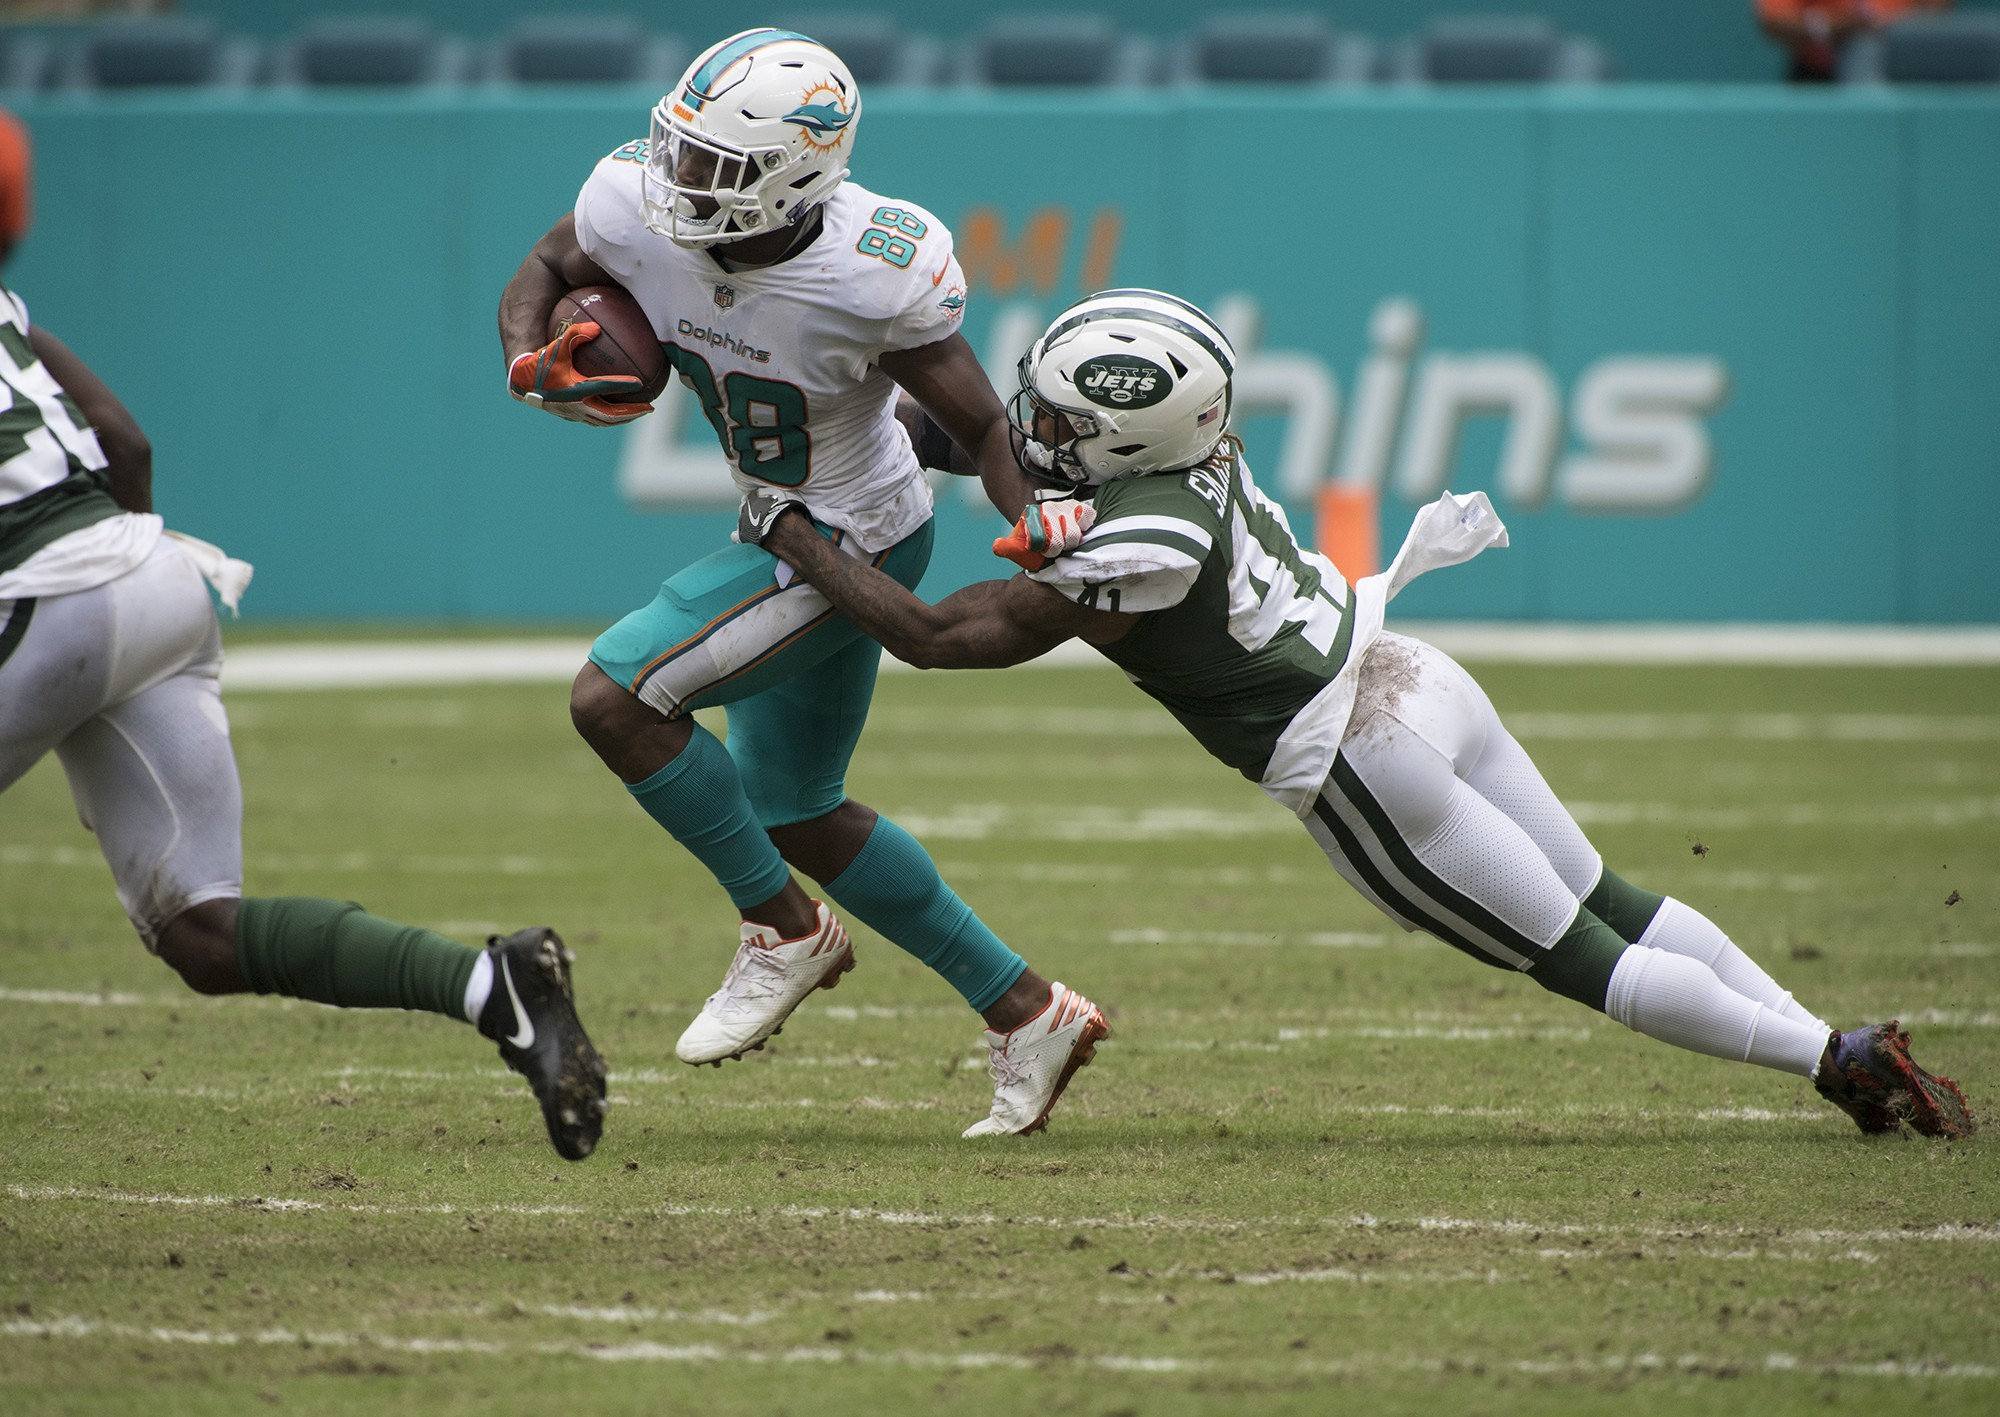 New York Jets cornerback Buster Skrine (41)defends as Miami Dolphins wide receiver Leonte Carroo (88) advances the ball after a 2nd half play of an NFL football game on Sunday, Oct. 22, 2017, in Miami Gardens, Fla. The Miami Dolphins went on to defeat the New York Jets 28-31.(Donald Edgar/El Latino Digital)